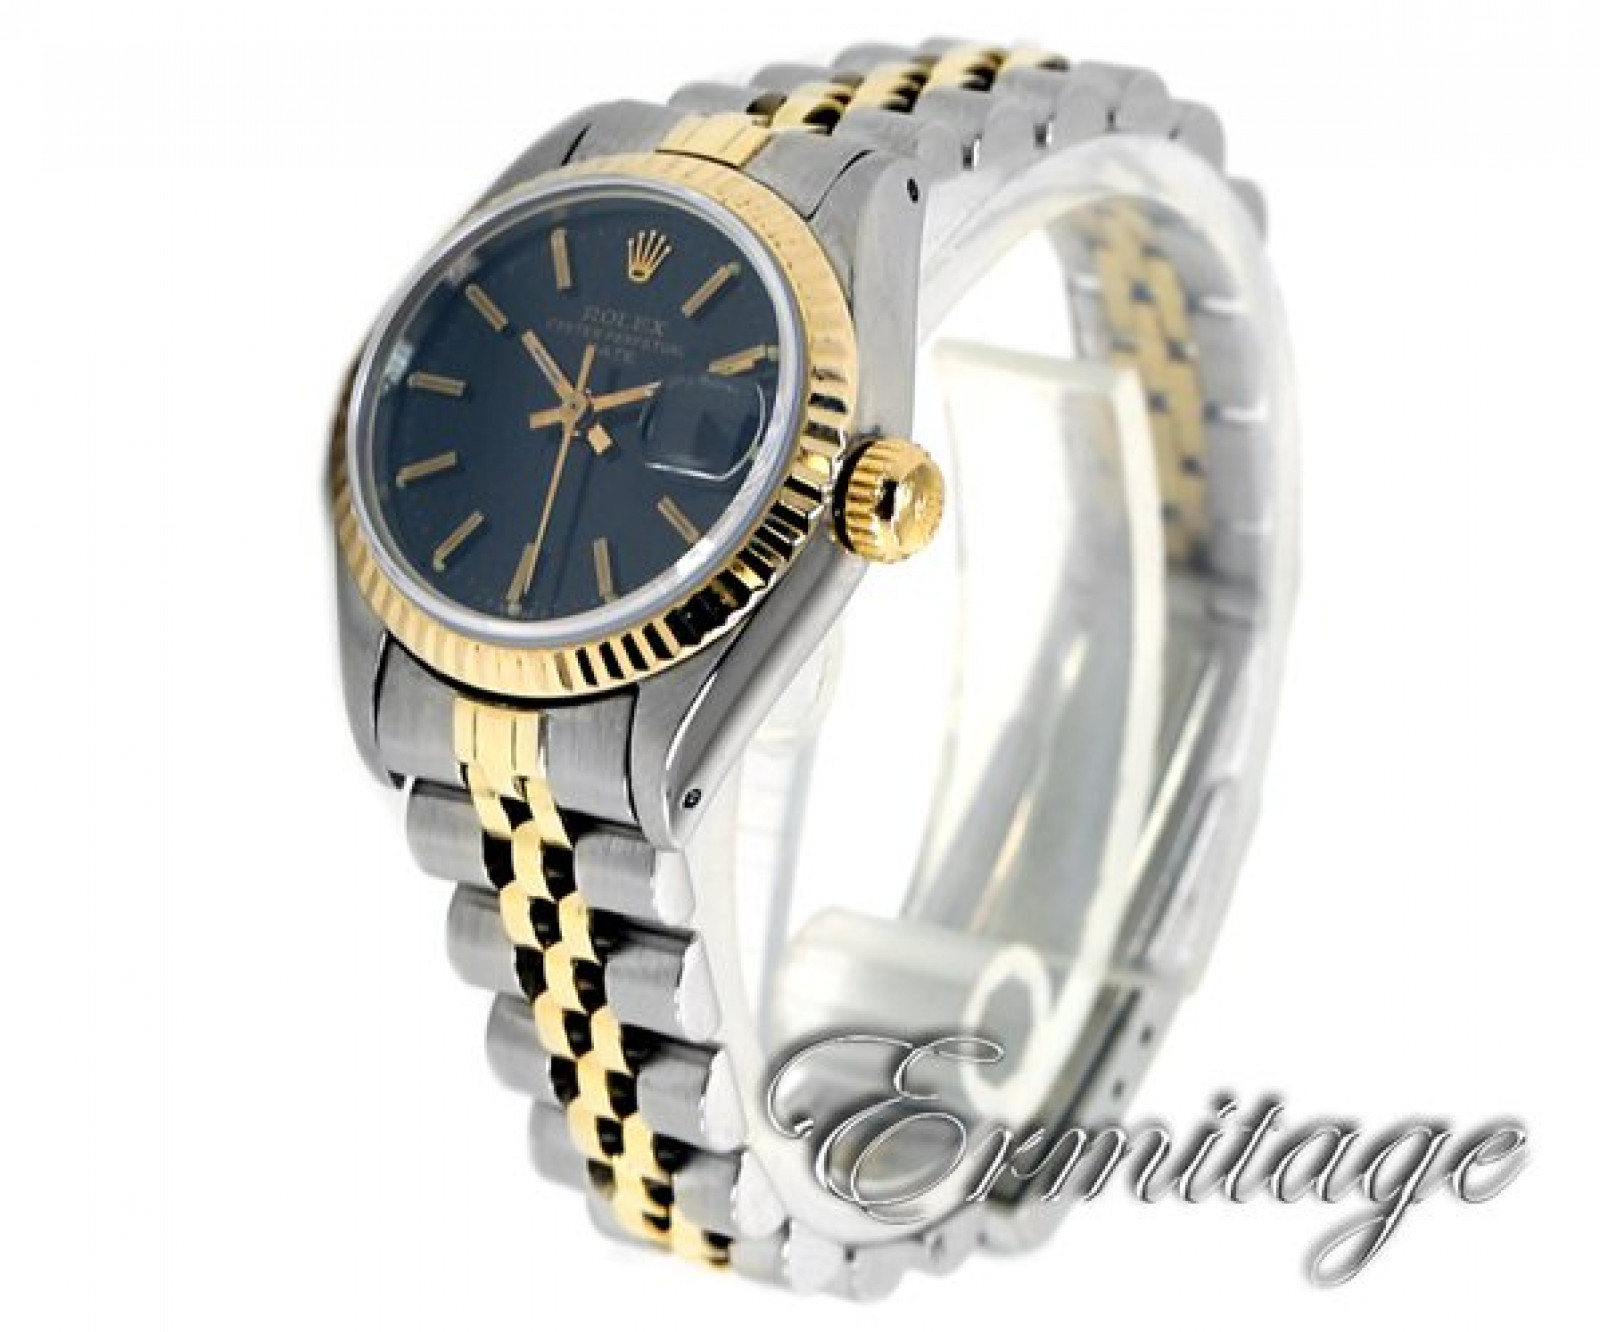 Vintage Rolex Date 6917 Gold & Steel with Black Dial